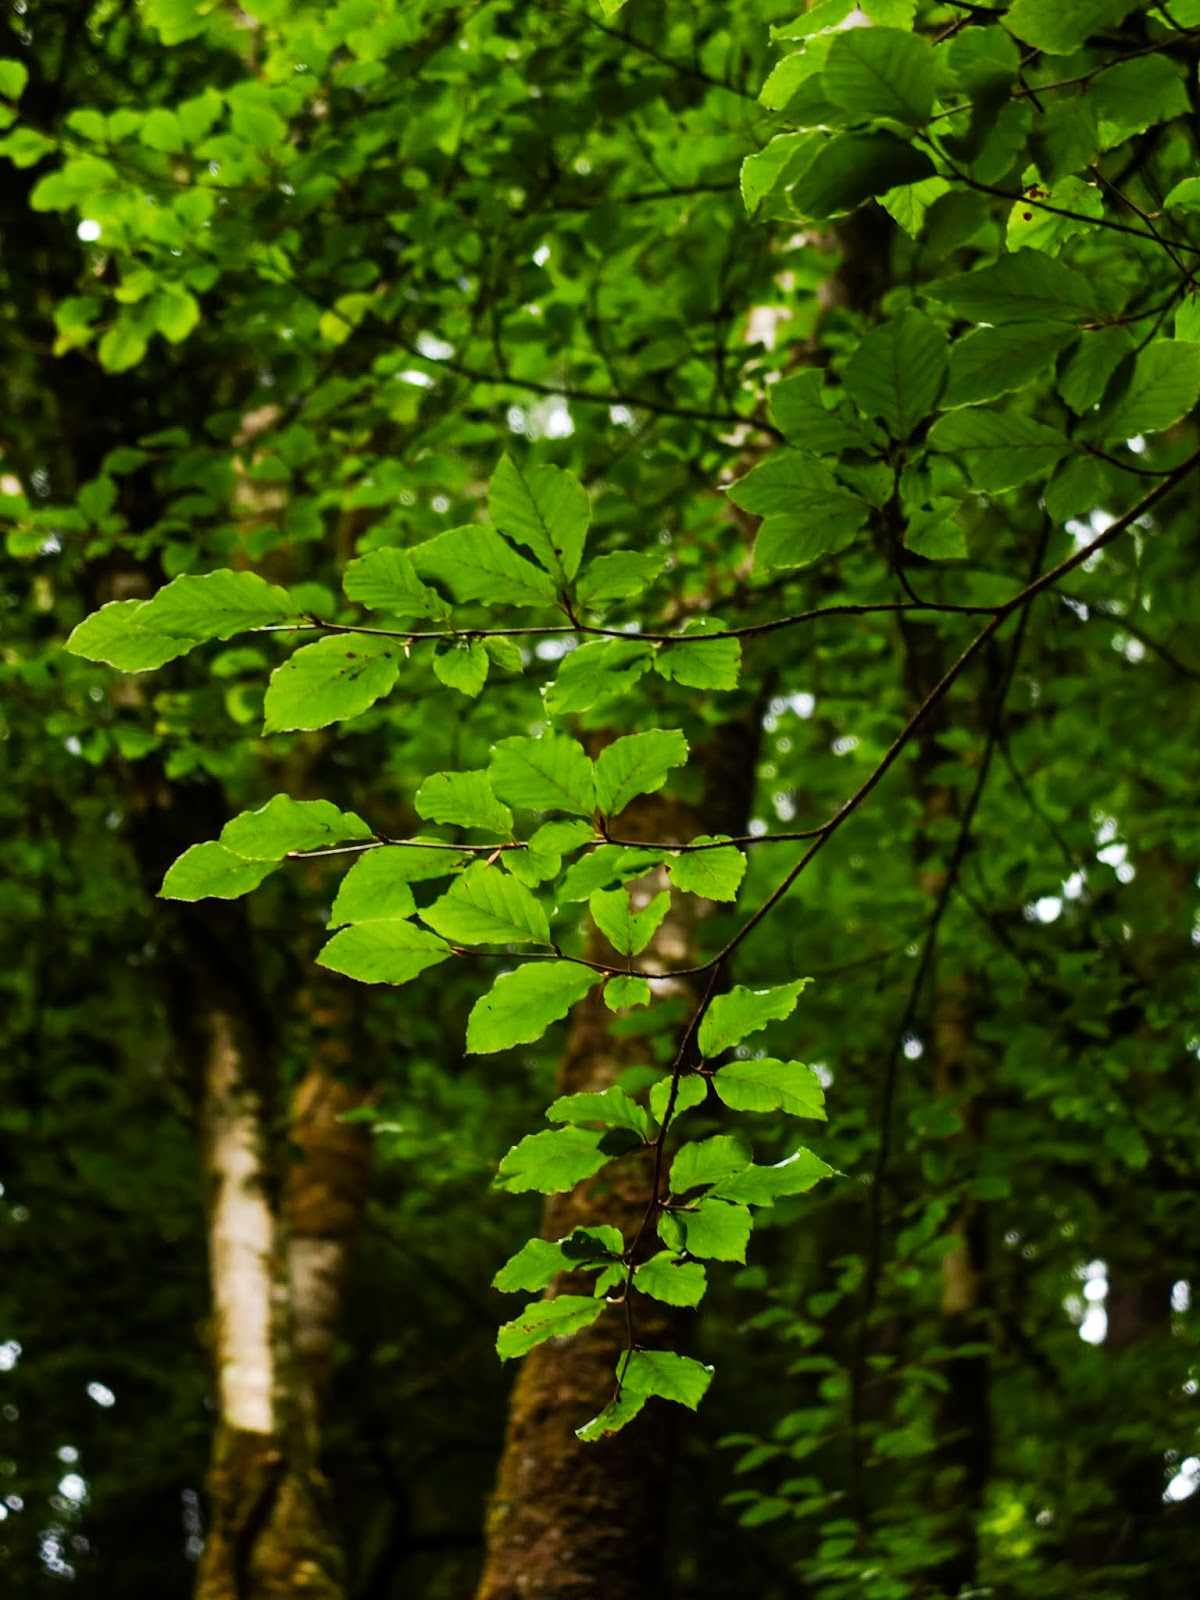 Green leaves on tree branches in a forest.